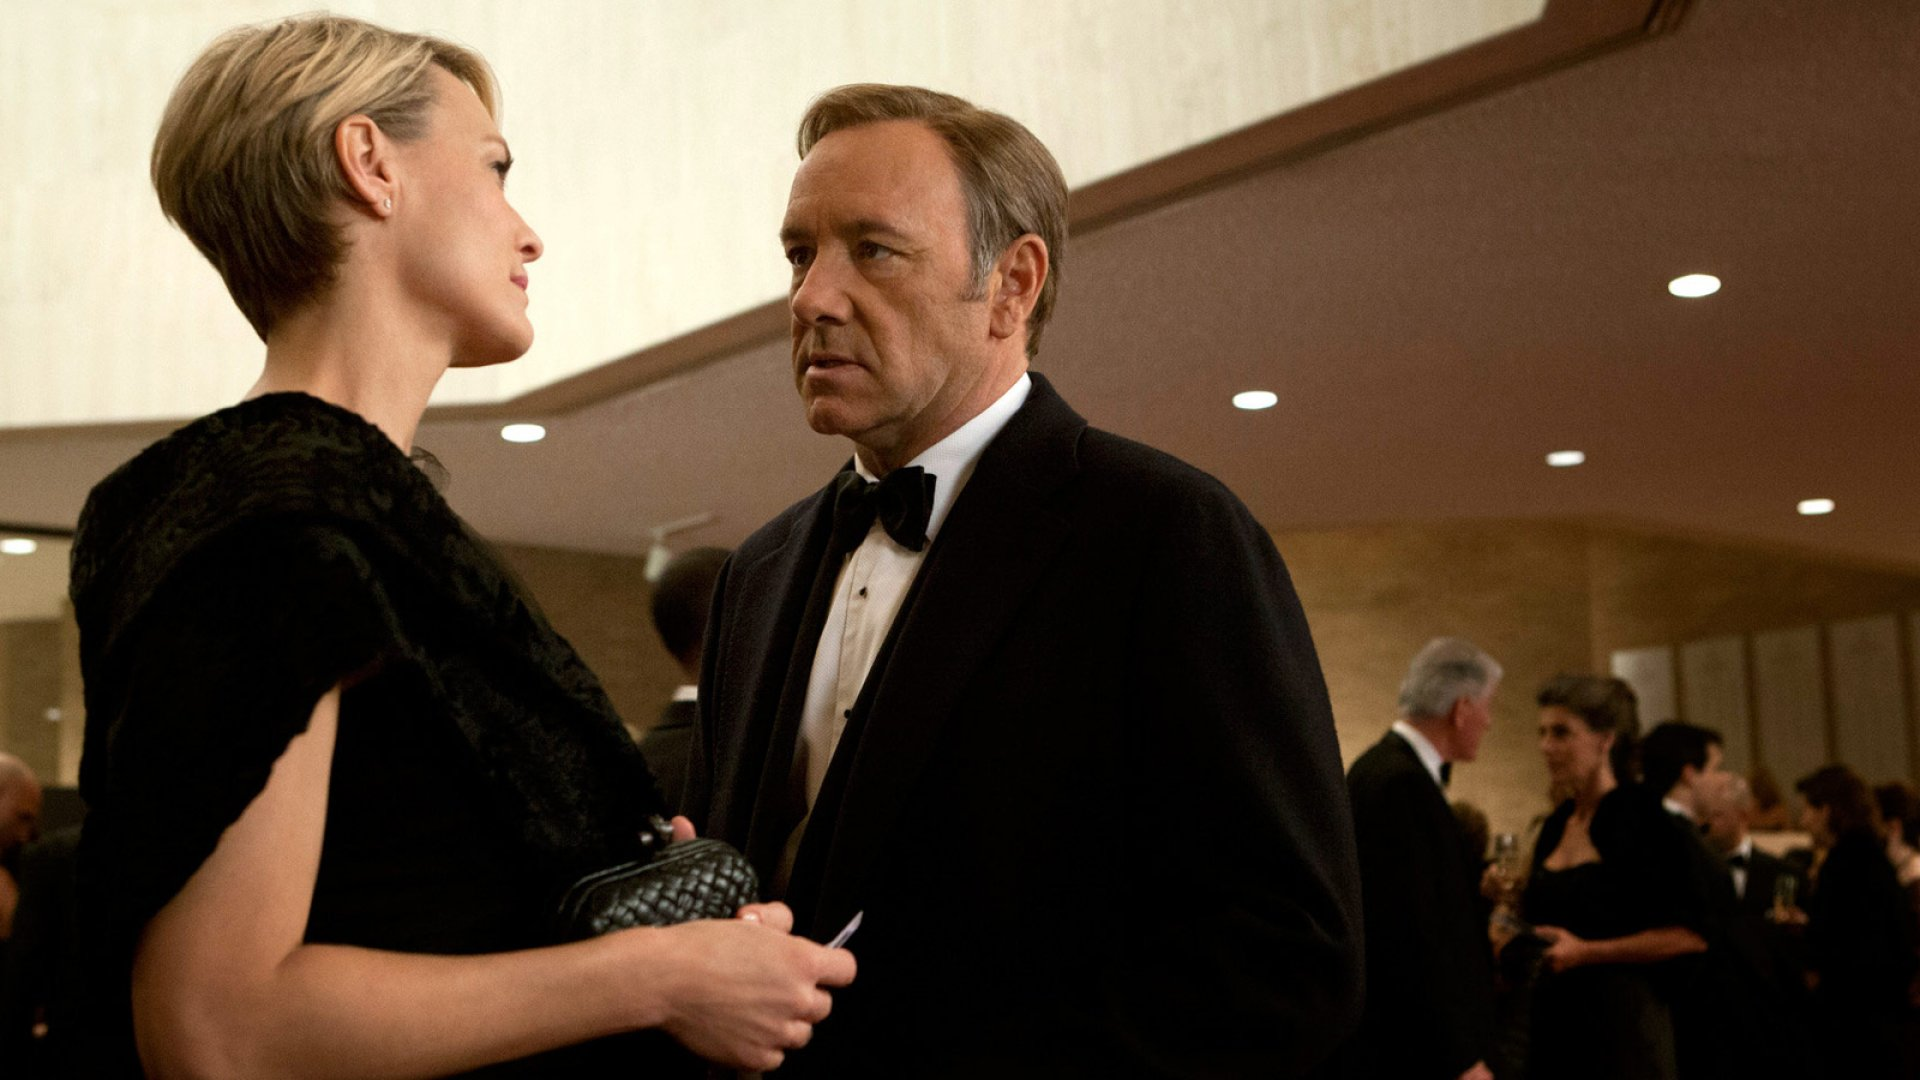 Probably the Only Leadership Lesson Worth Learning From <i>House of Cards</i>